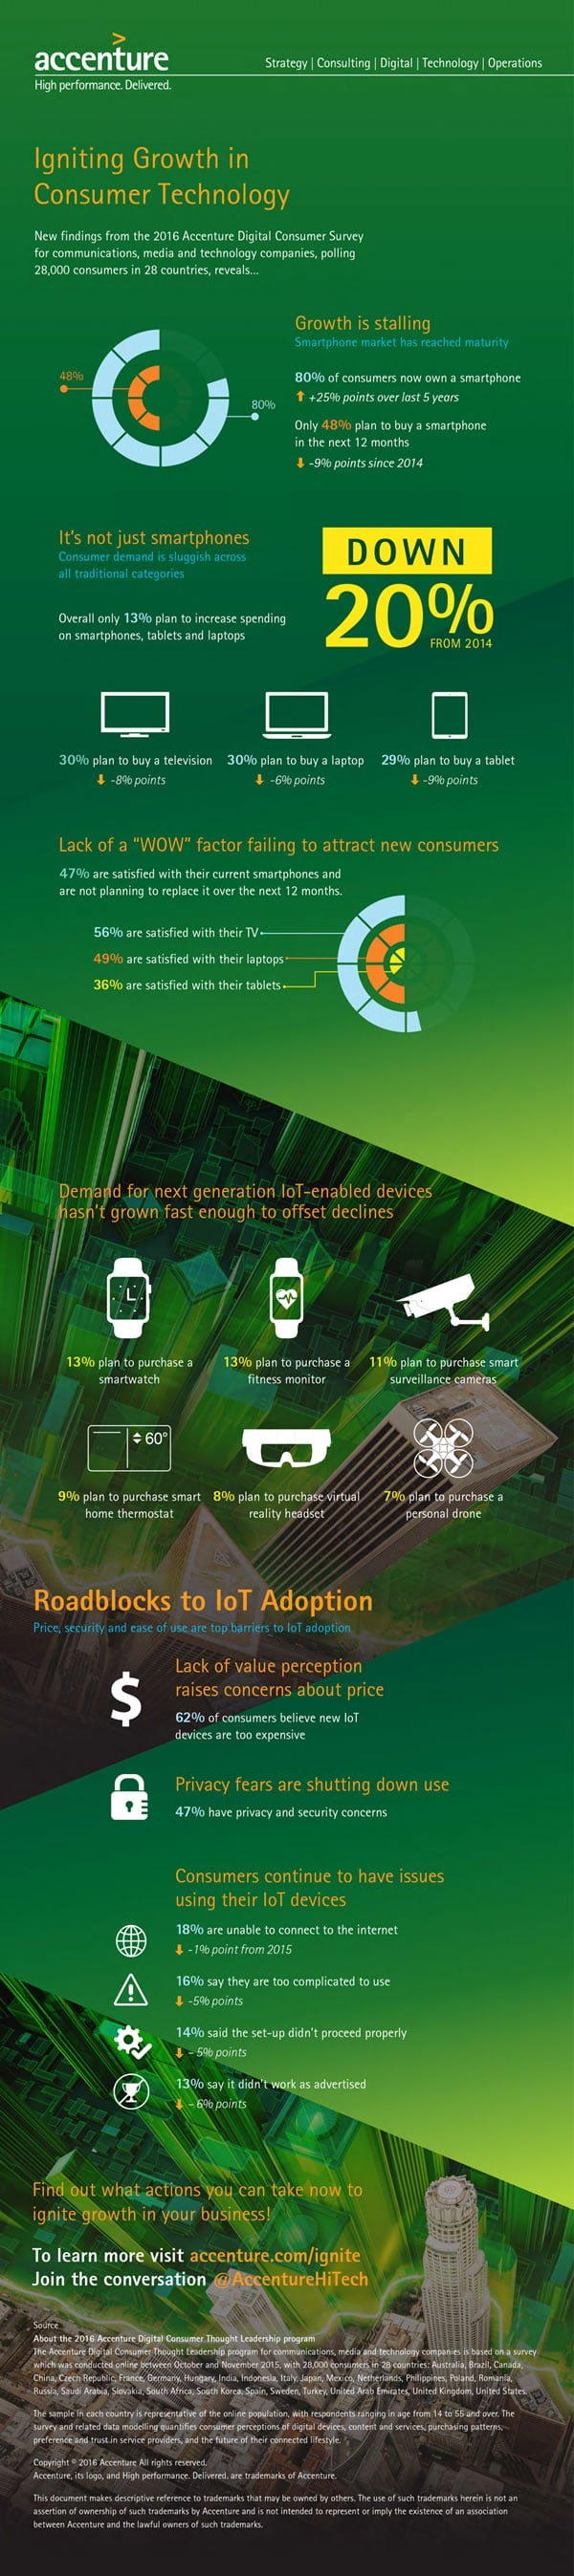 Accenture infographic - Igniting Growth in Consumer Technology - copyright Accenture - click for full infographic in PDF